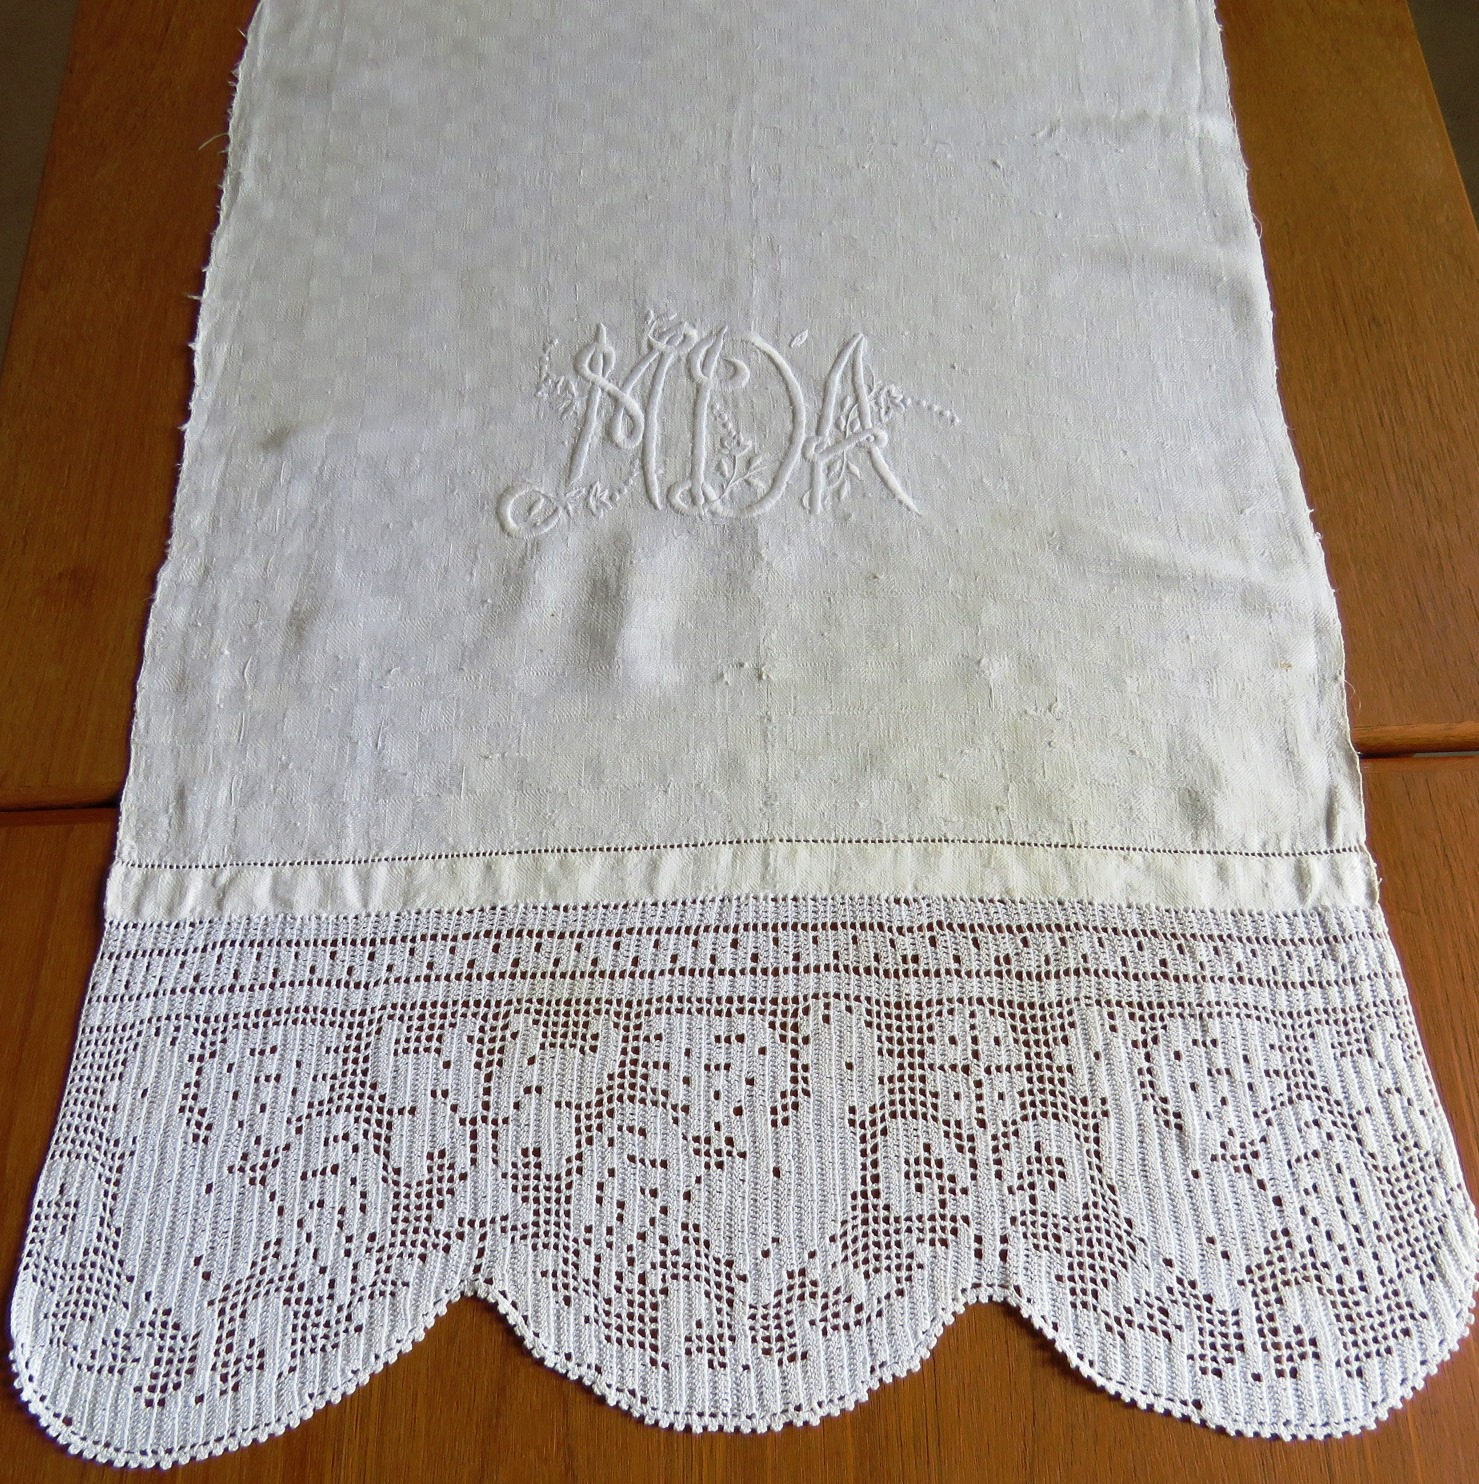 "Antique Linen Bath Towel Embroidered Monogram M D A Hand Crochet Lace 62"" x 22""  (L&T-607)"